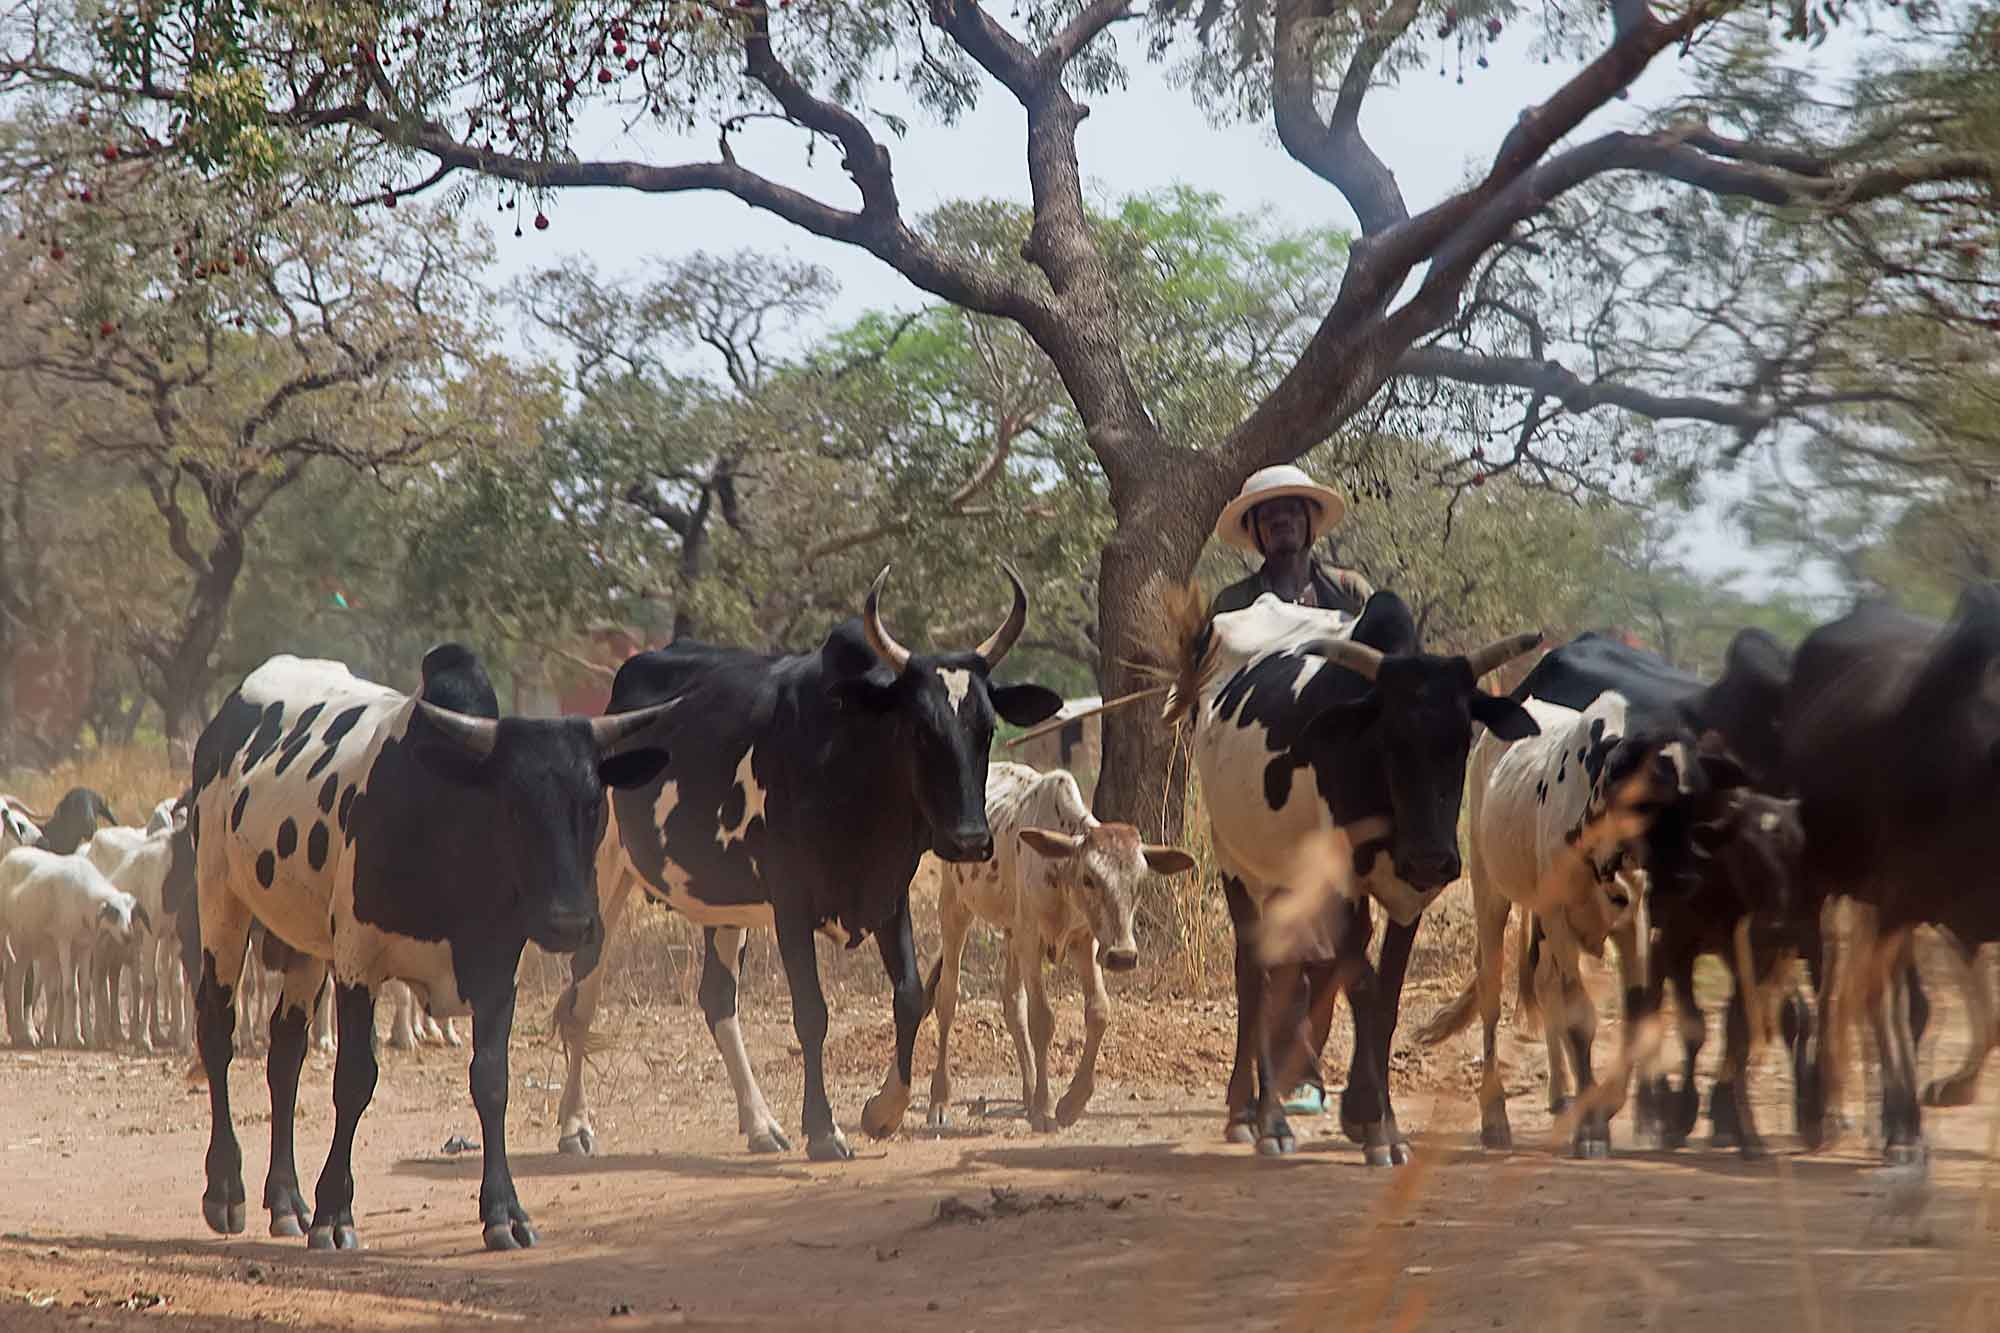 a-man-herding-his-cattle-banfora-burkina-faso-africa